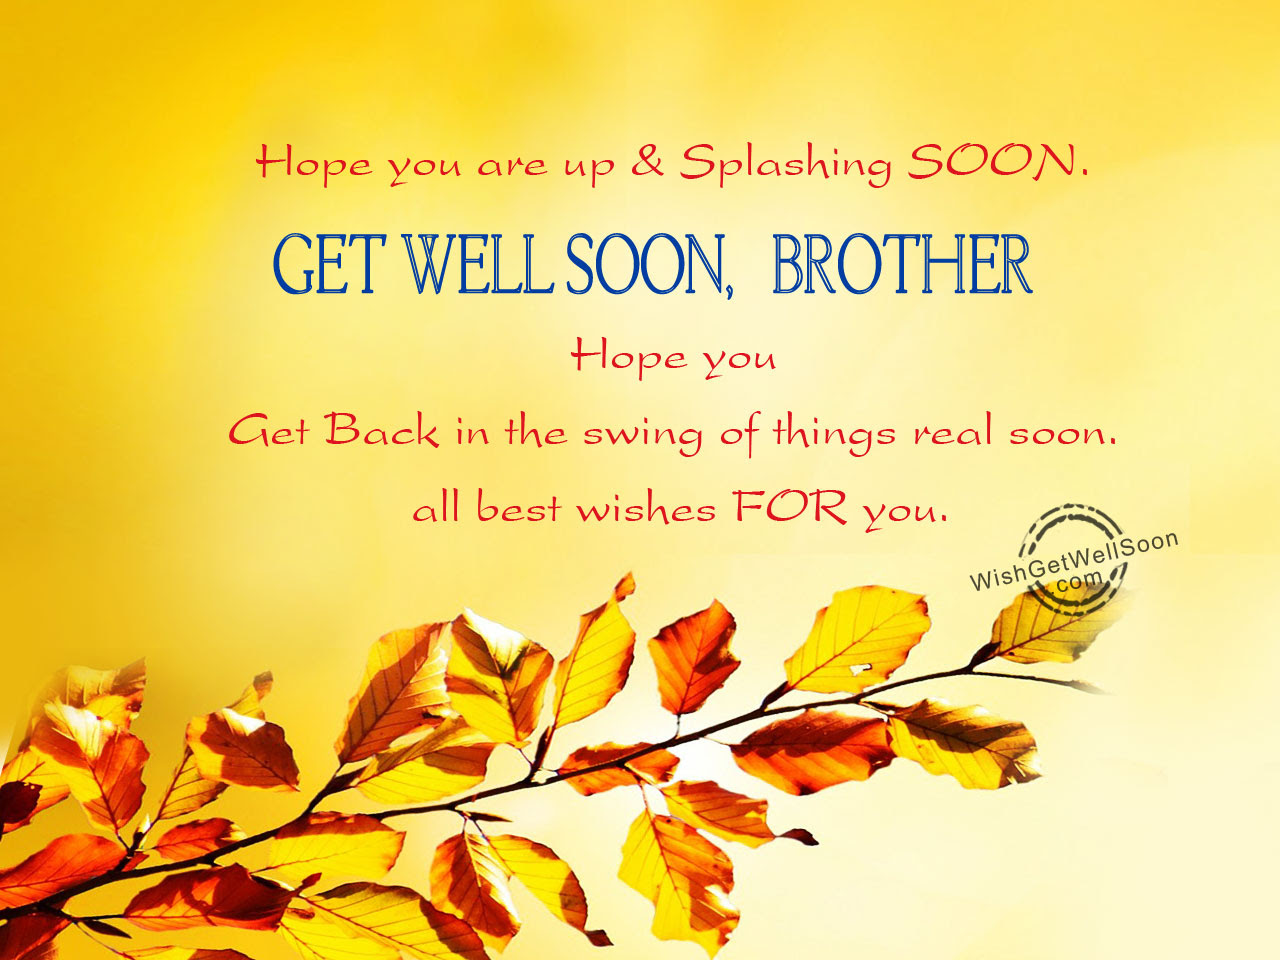 Get Well Soon Wishes For Brother Pictures Images Page 4